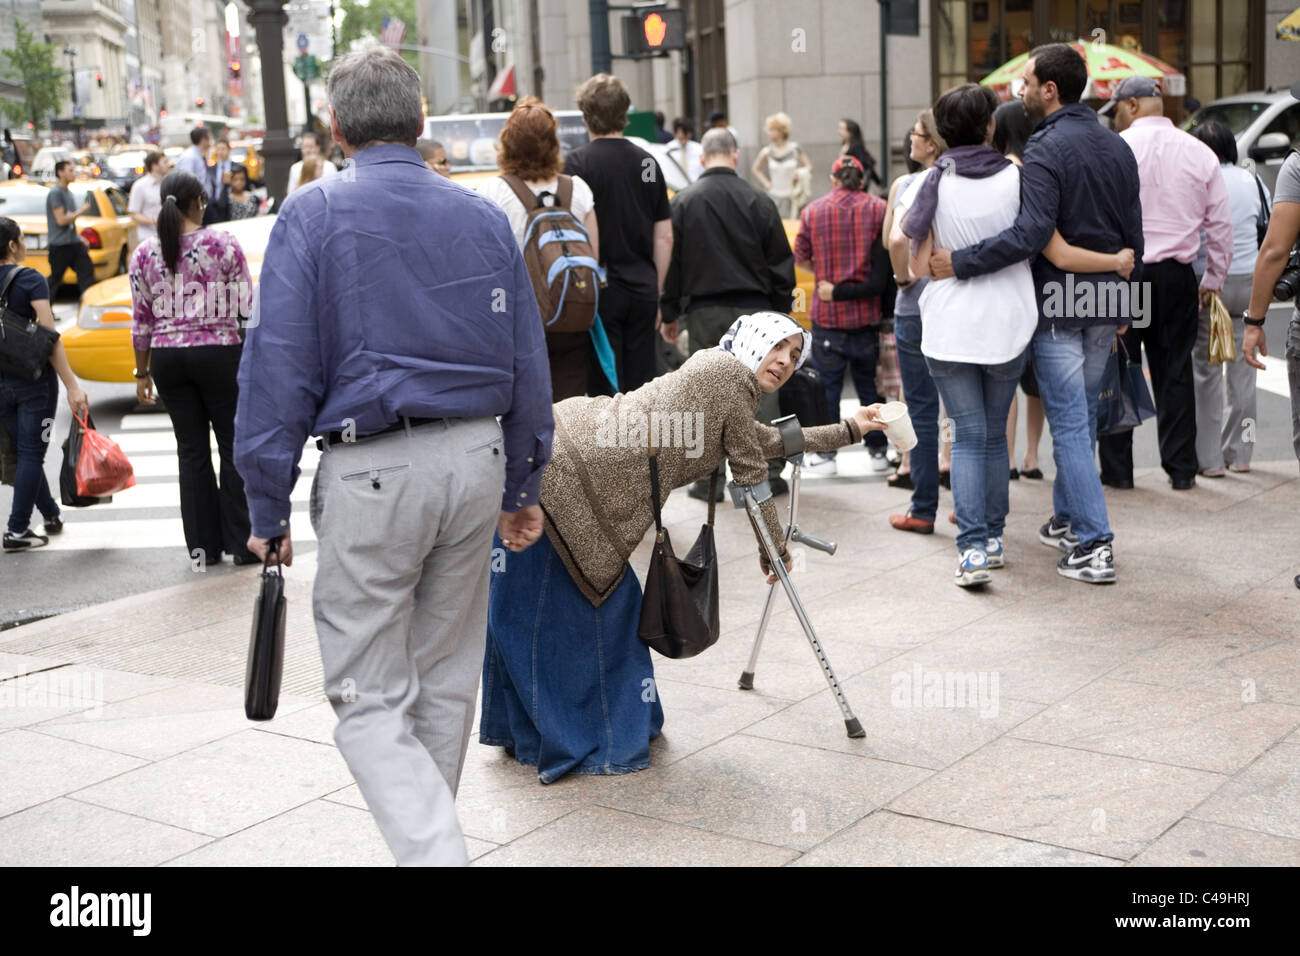 Disabled gypsy woman begging on 5th Avenue in New York City. - Stock Image